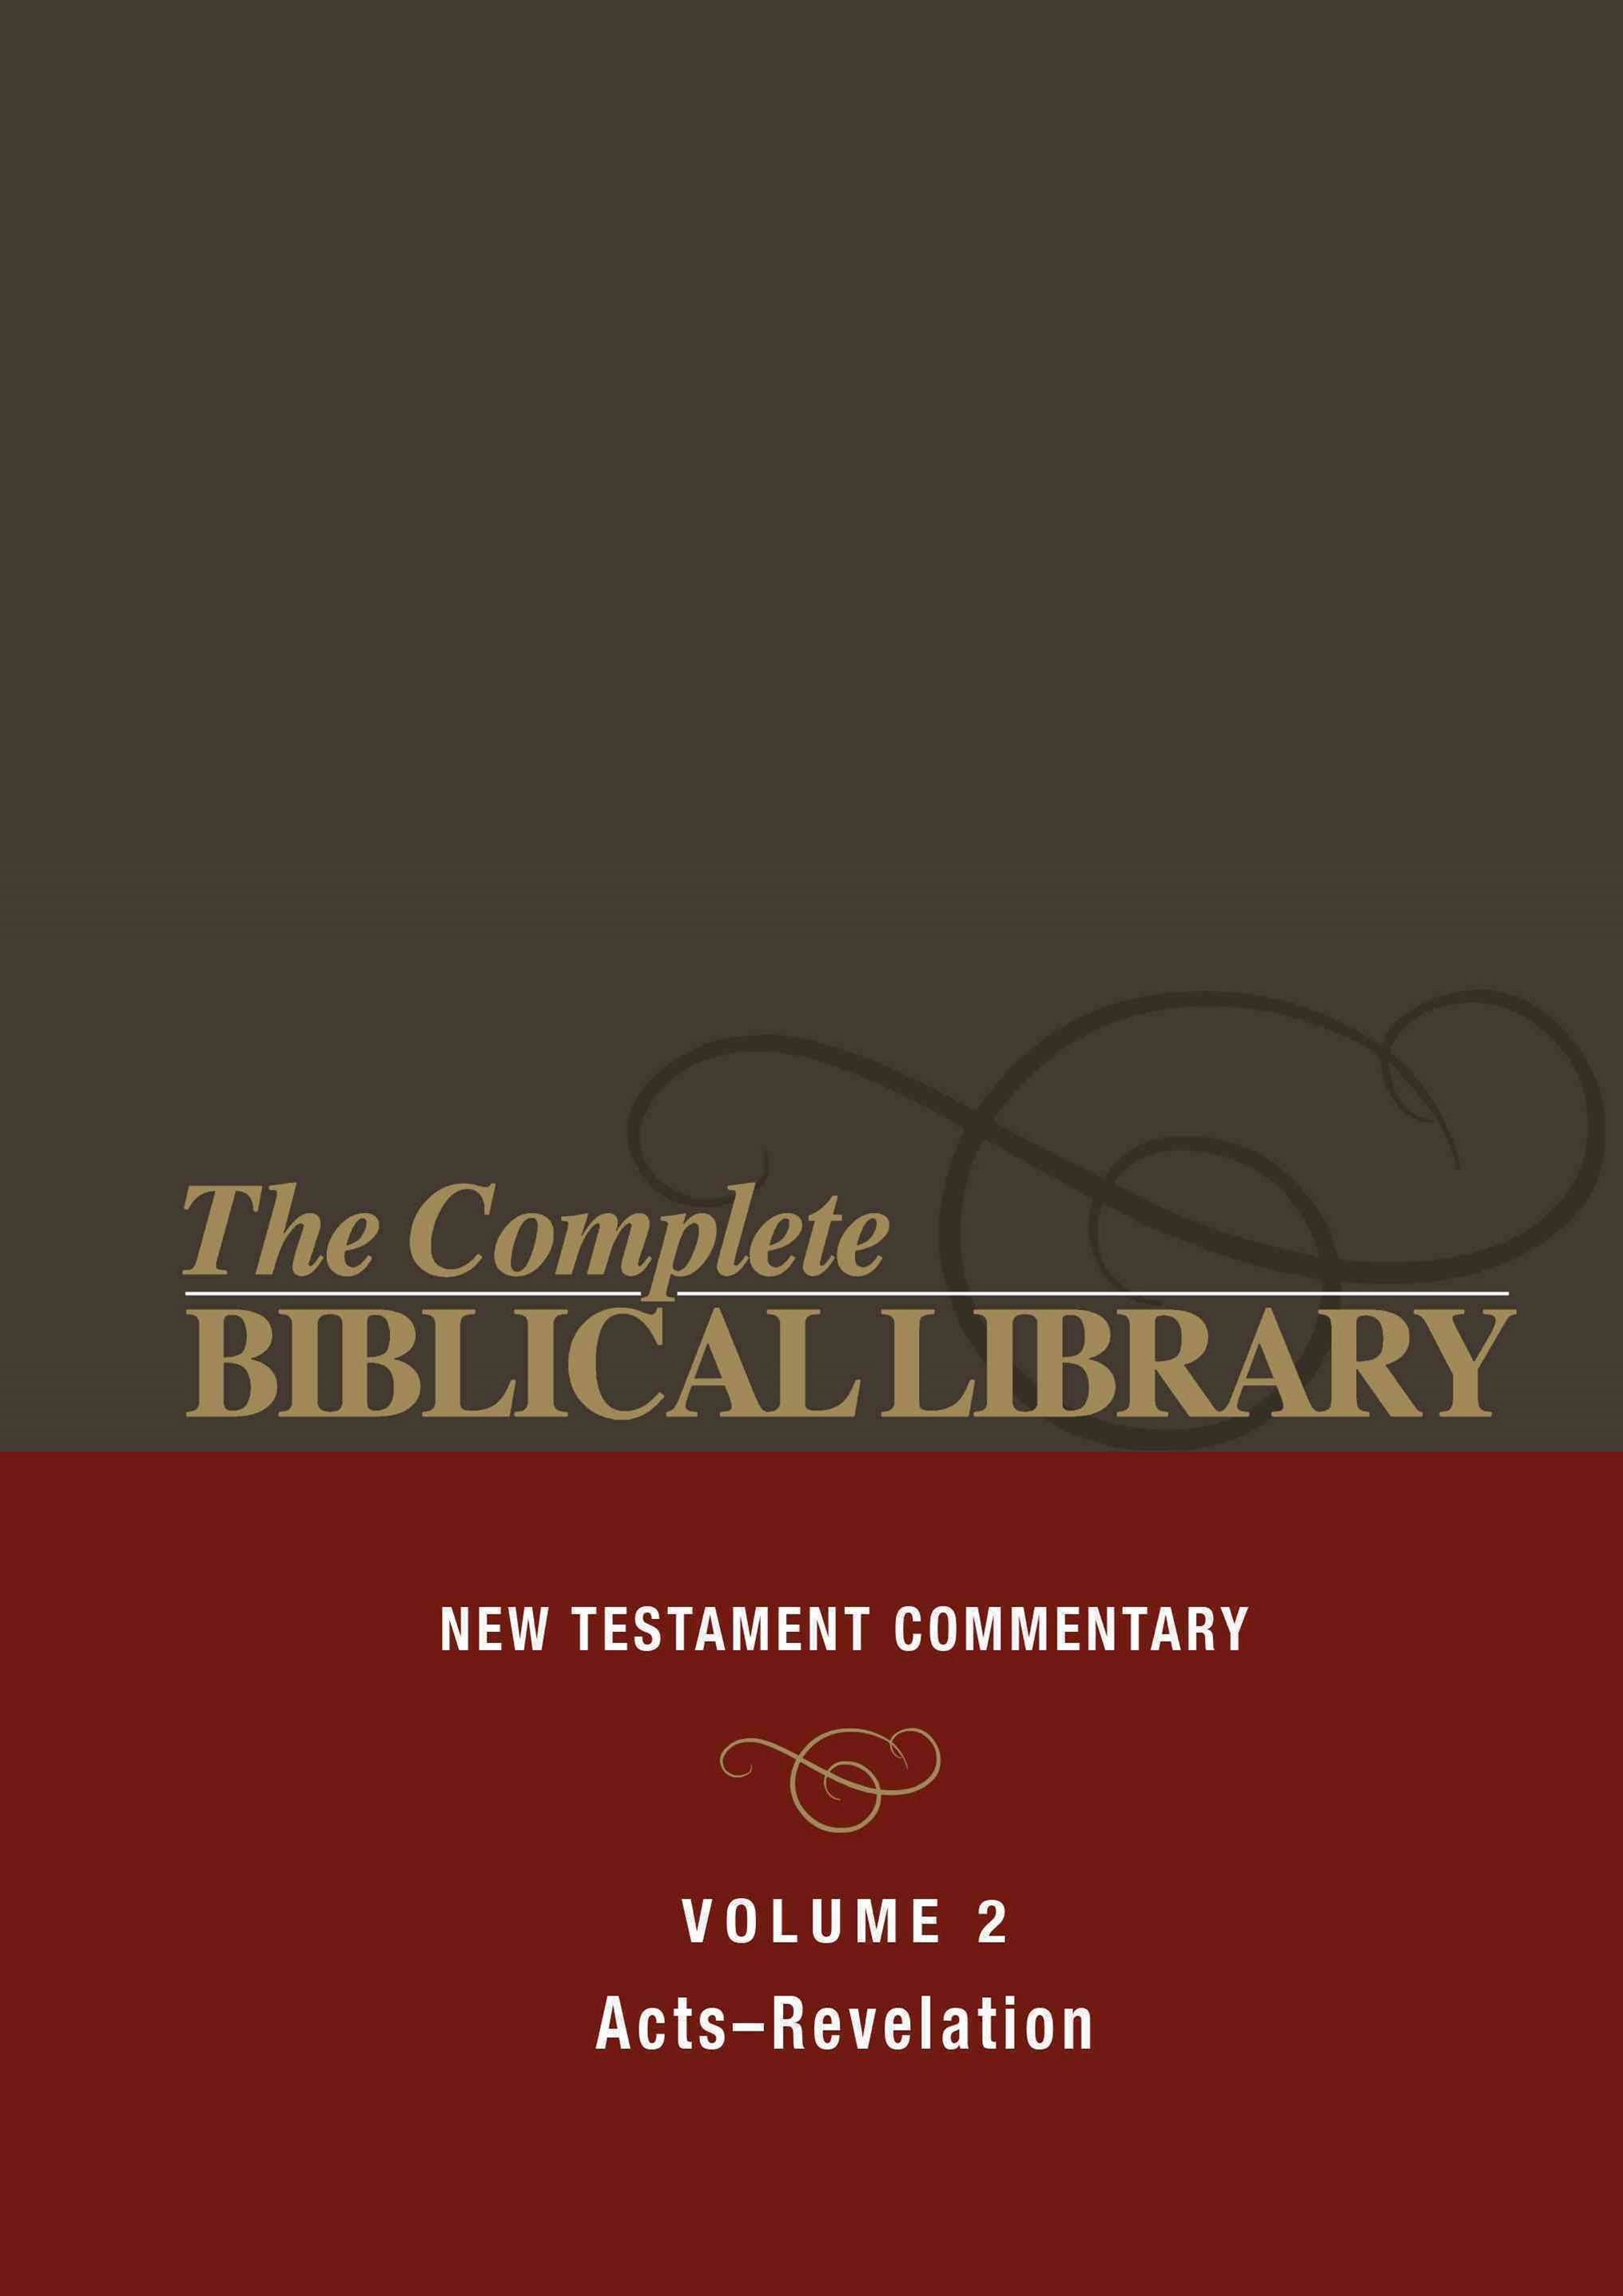 The Complete Biblical Library